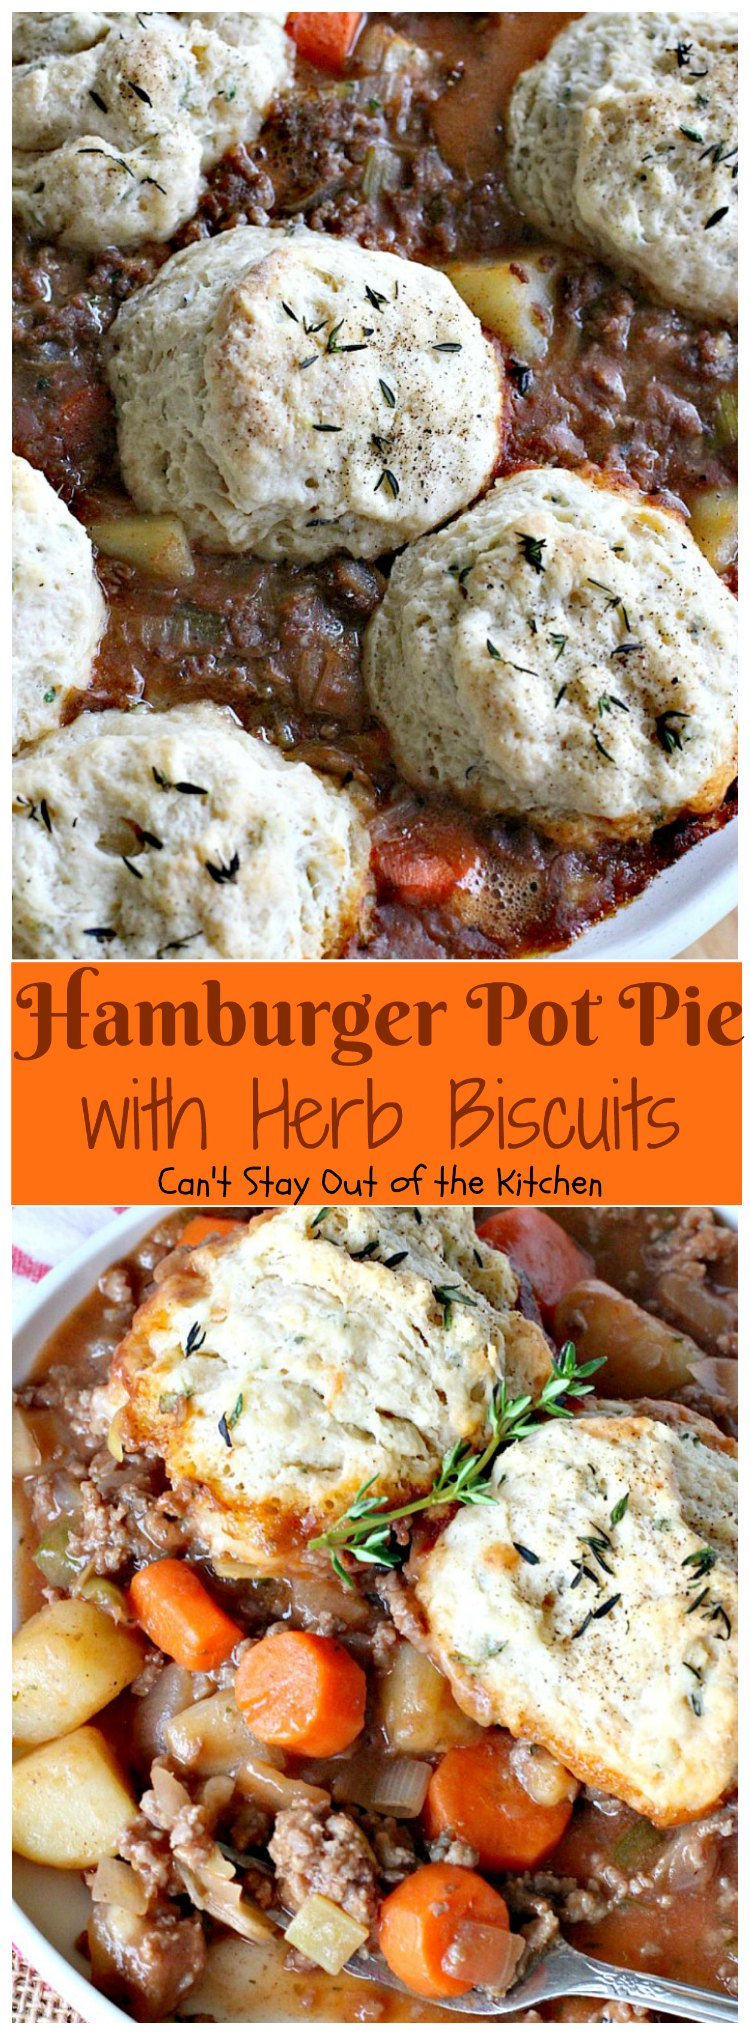 Hamburger Pot Pie with Herb Biscuits - Can't Stay Out of ...